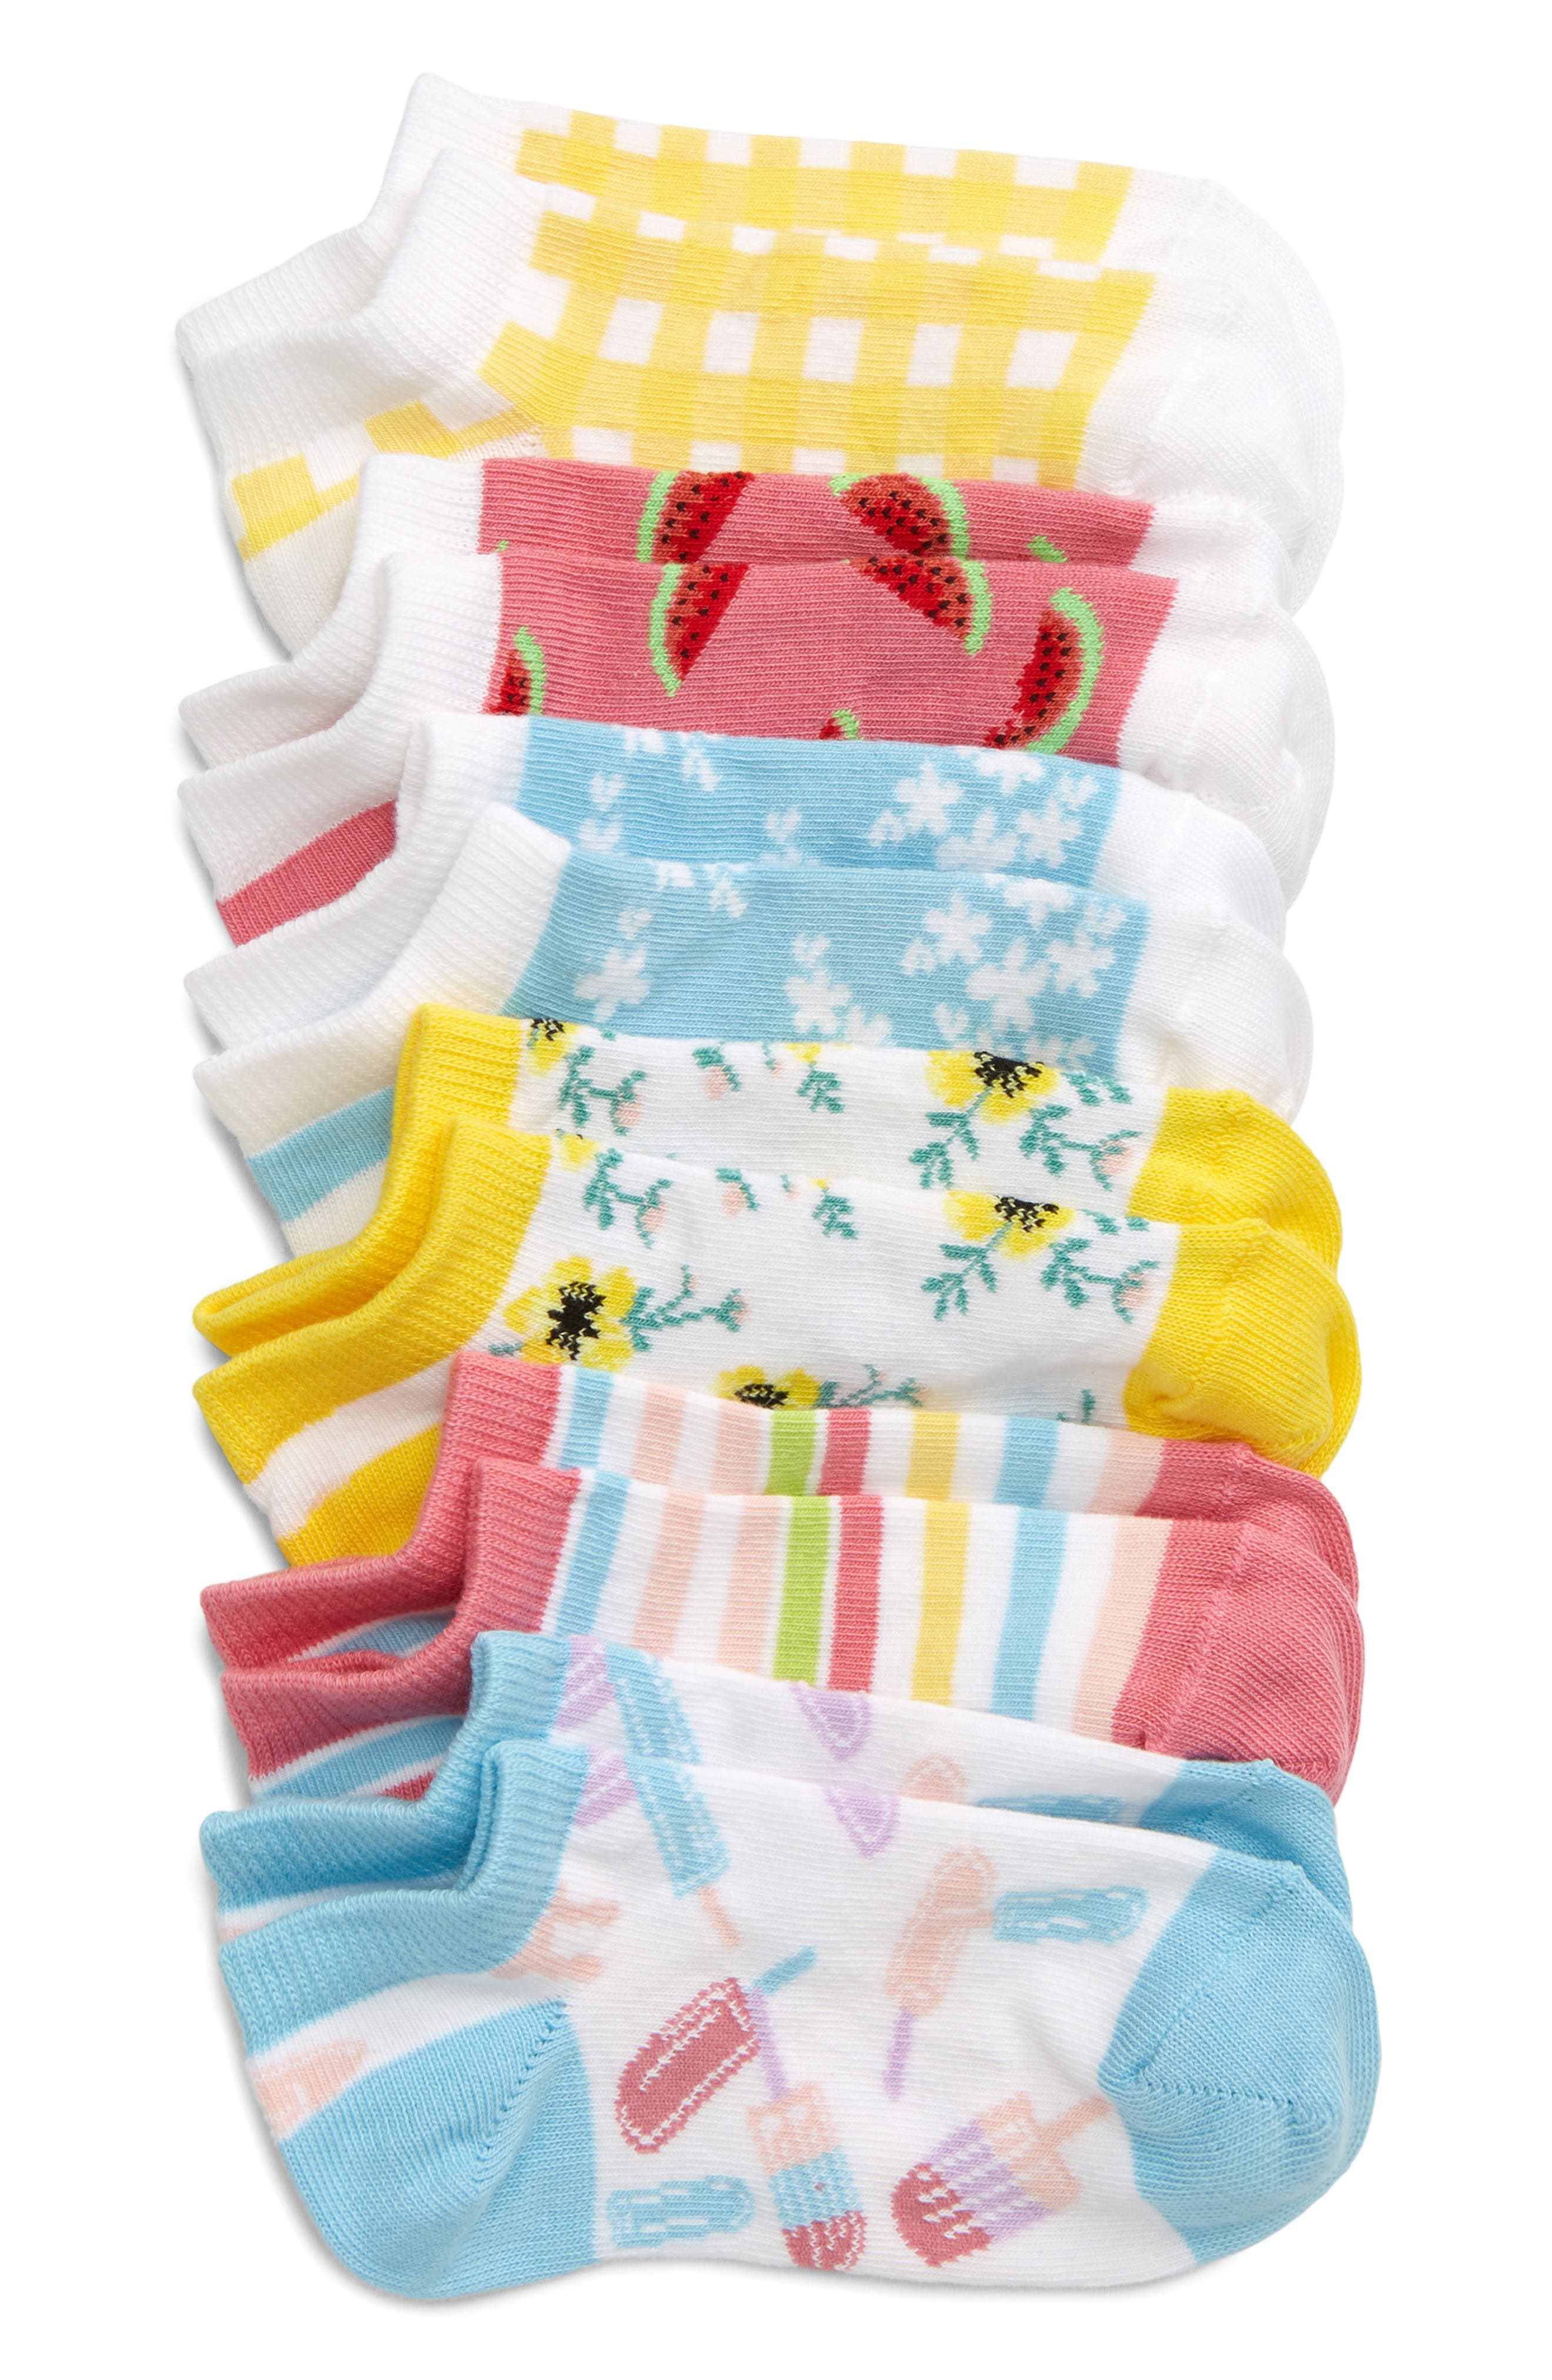 Picnics in the park will be more fun thanks to these stretchy cotton-blend socks knit with an array of colorful, summery patterns. Style Name: Tucker + Tate Kids\\\' Picnic 6-Pack Low Cut Socks (Walker, Little Kid & Big Kid). Style Number: 5978177. Available in stores.